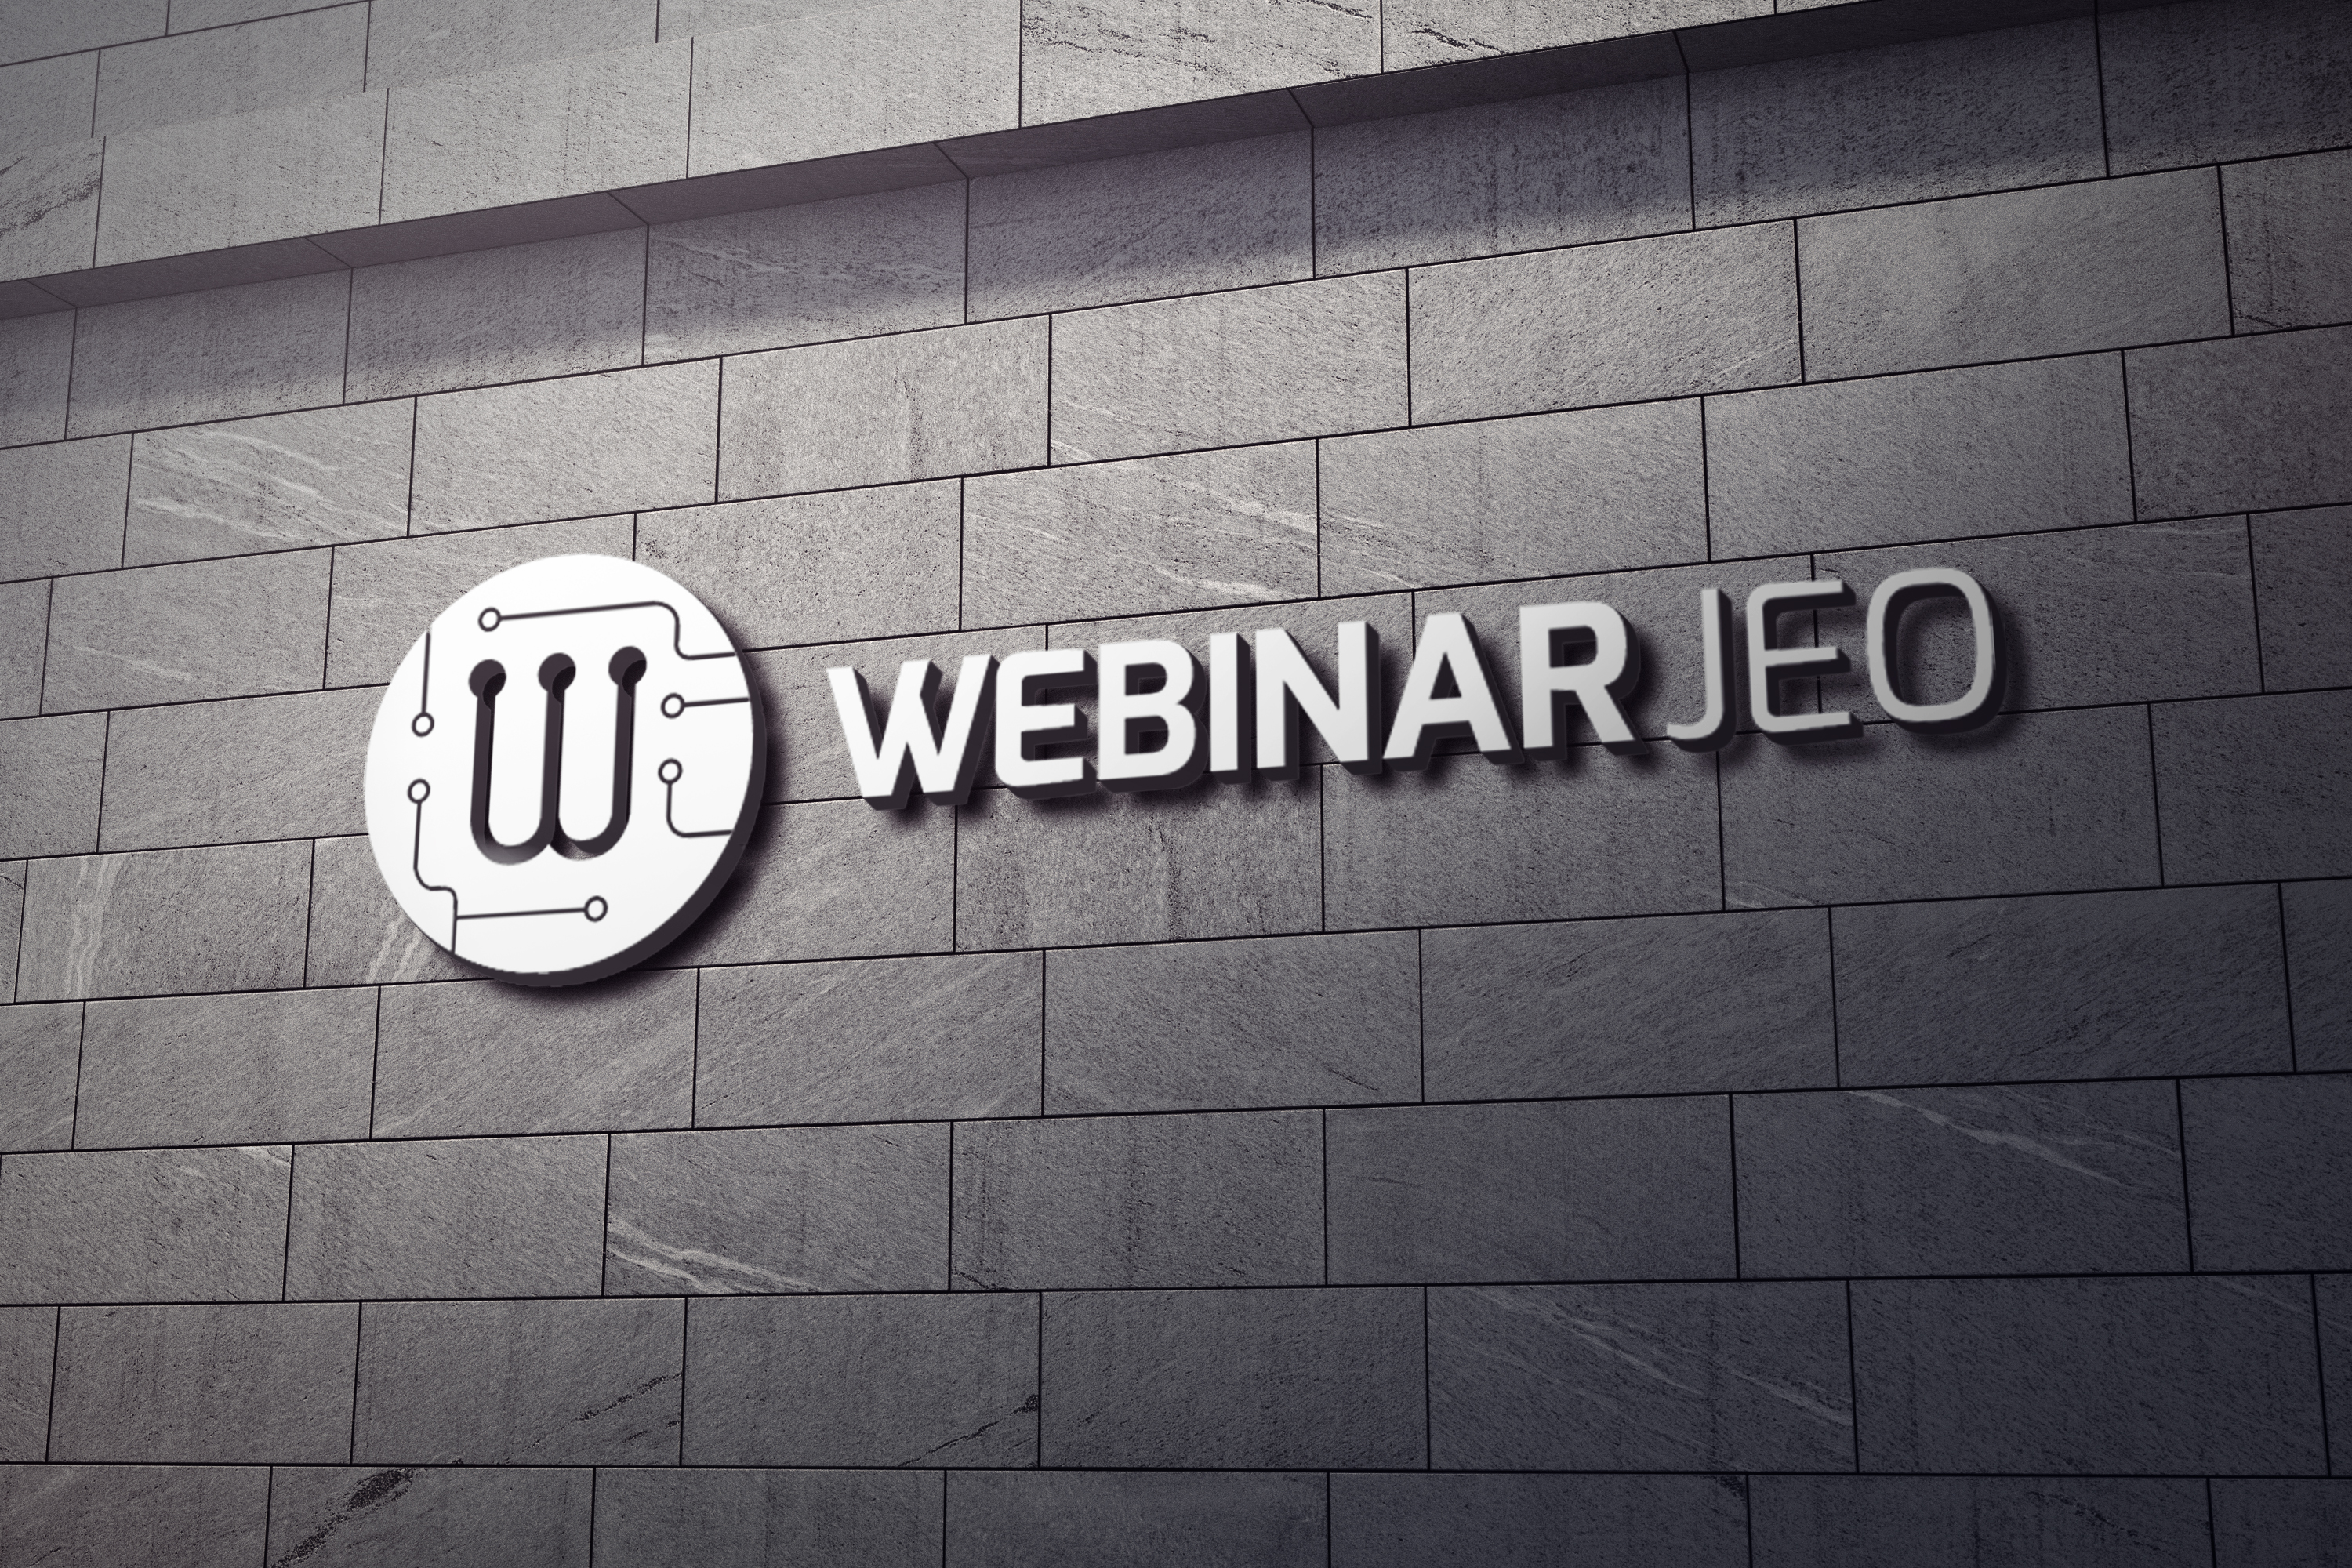 Try Webinar JEO and see the difference!